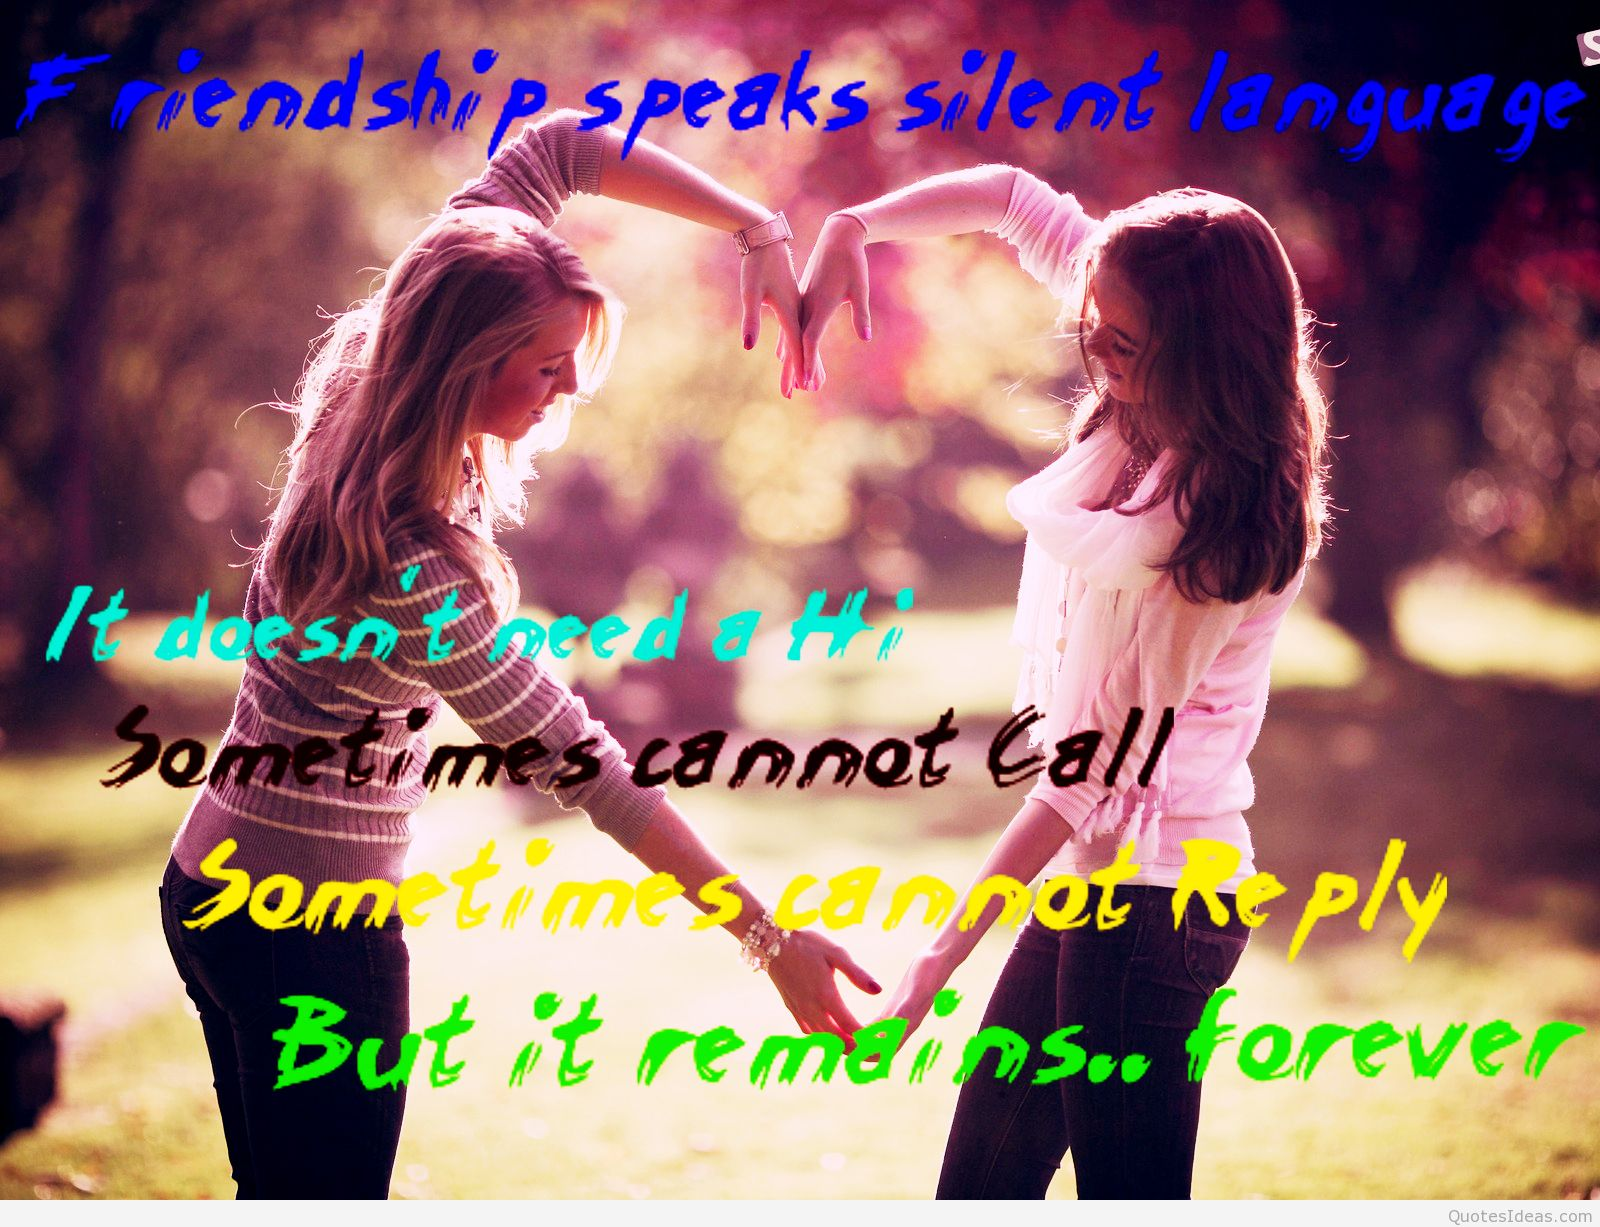 Happy Friendship Day Images Wishes Messages